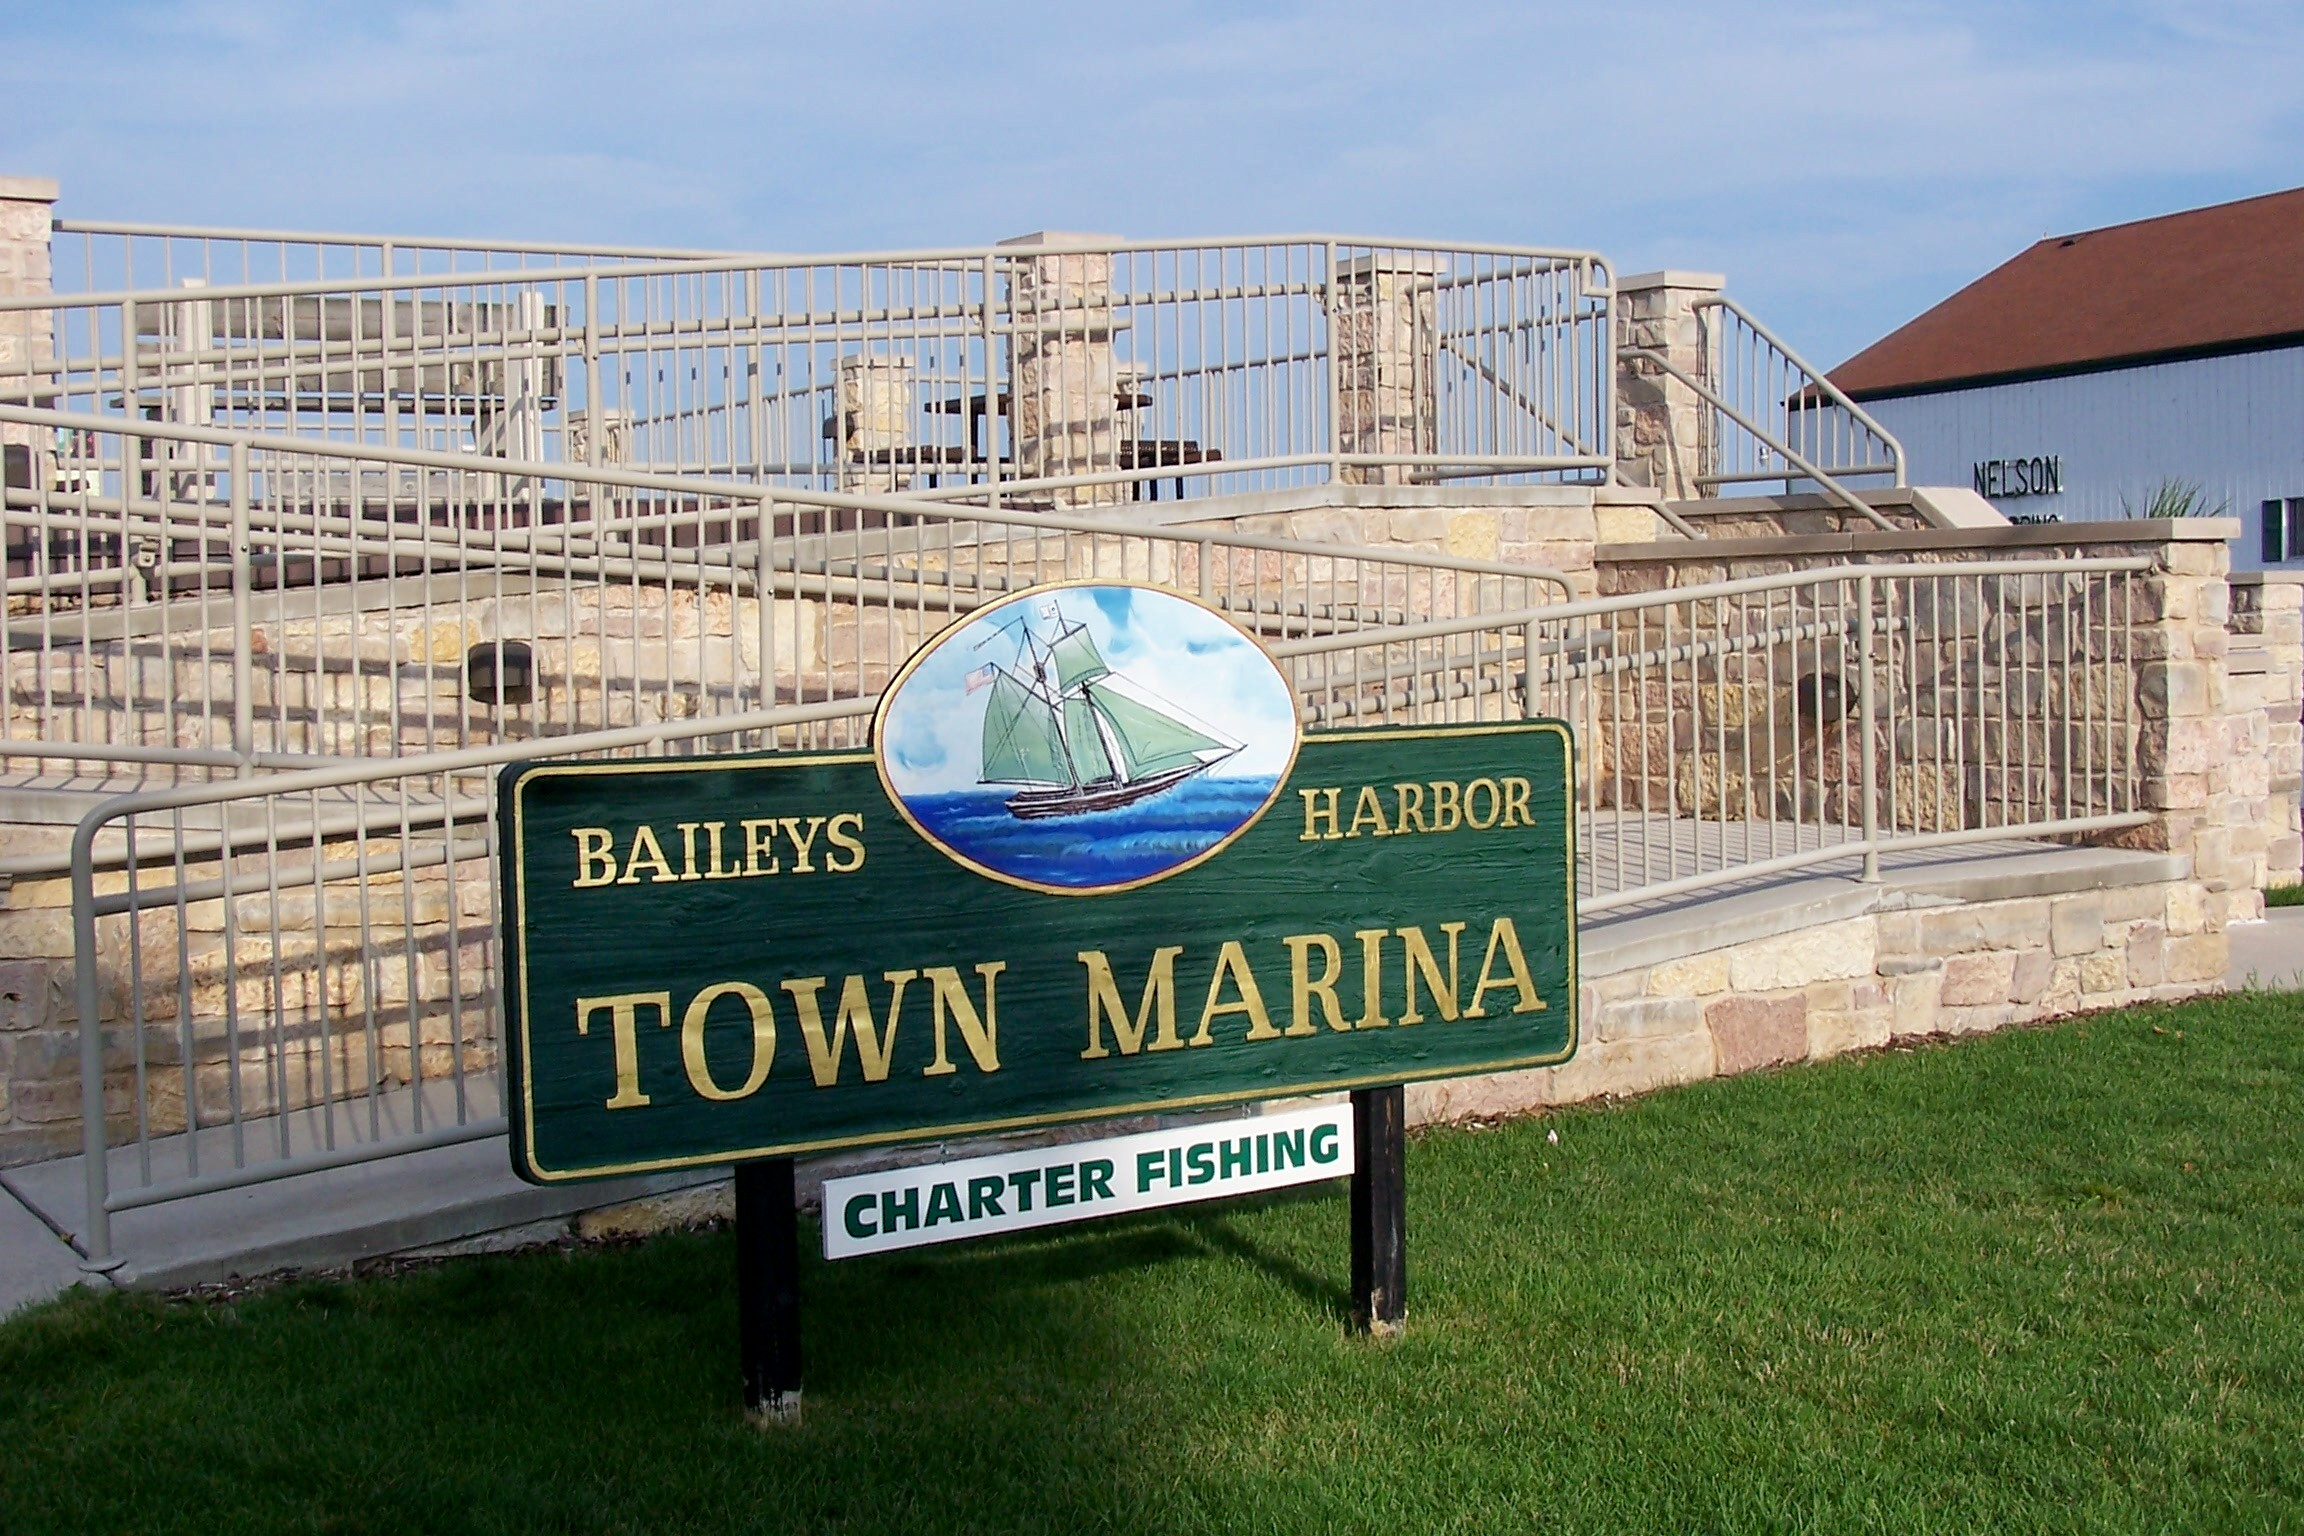 baileys harbor dating Here are 11 best snorkeling spots in america: 1 baileys  bailey's harbor is two hours north of green  adventures can explore several shipwrecks dating back .